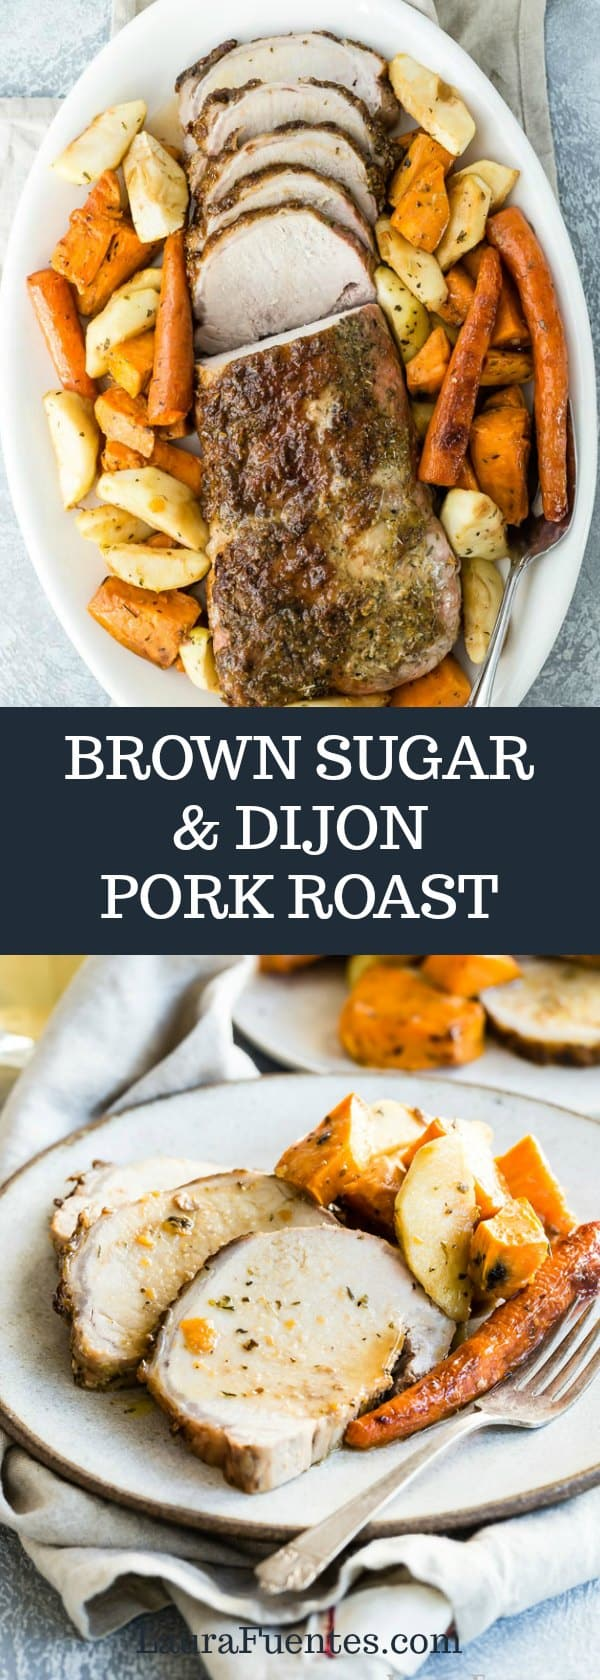 Brown Sugar and Dijon Pork Roast that's easy to make on a weeknight or as a holiday roast